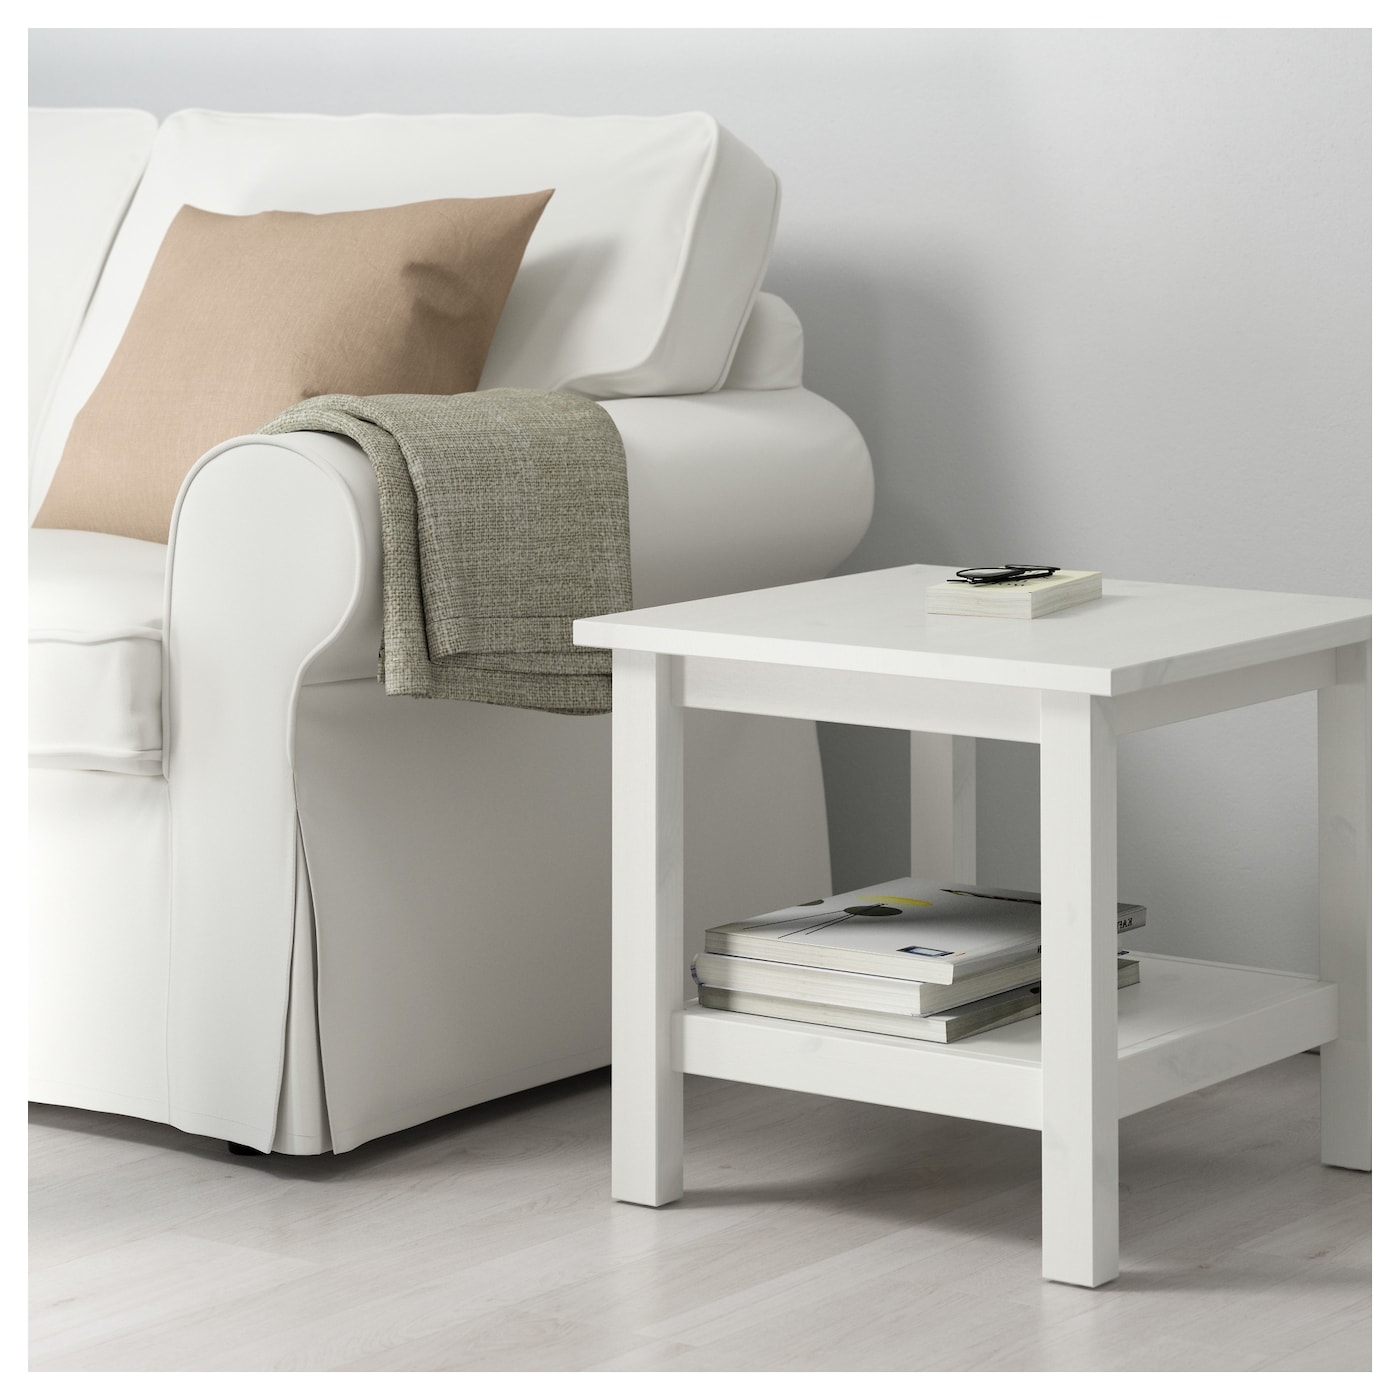 HEMNES Side Table White Stain 55x55 Cm